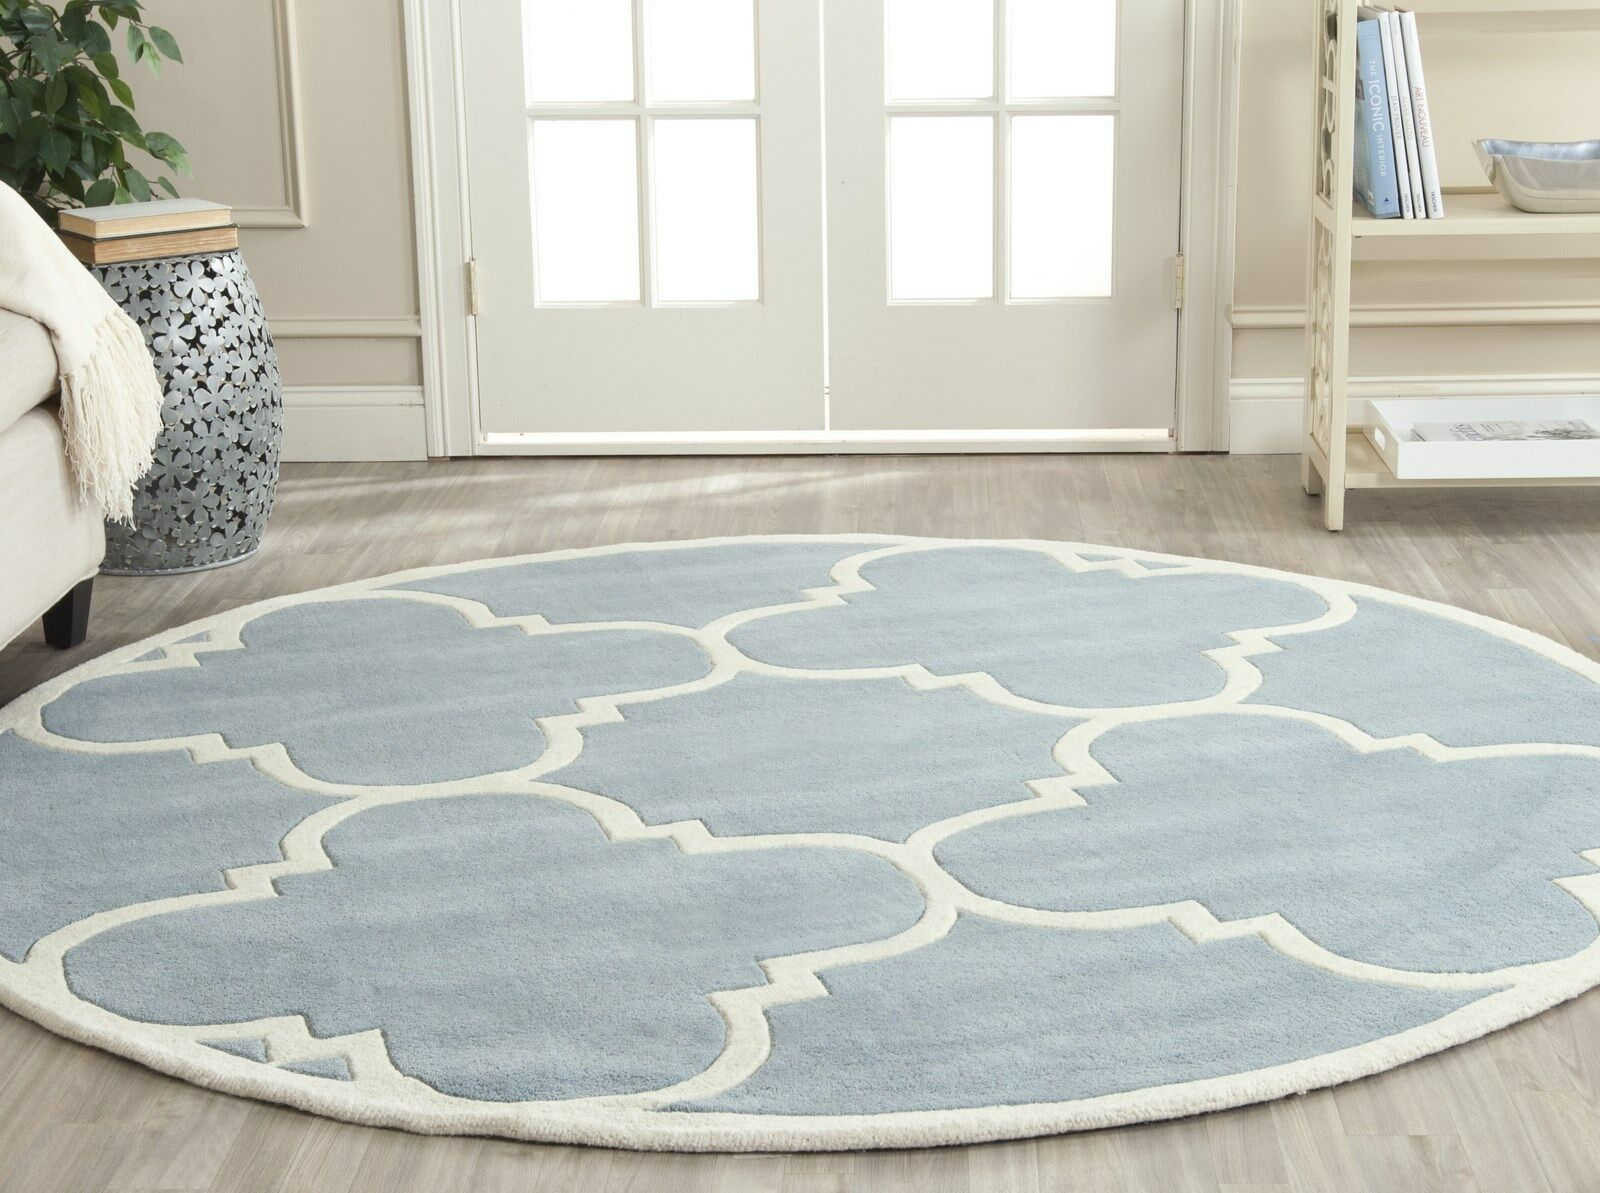 Wilkin Hand-Tufted Blue/Ivory Area Rug Rug Size: Round 4'